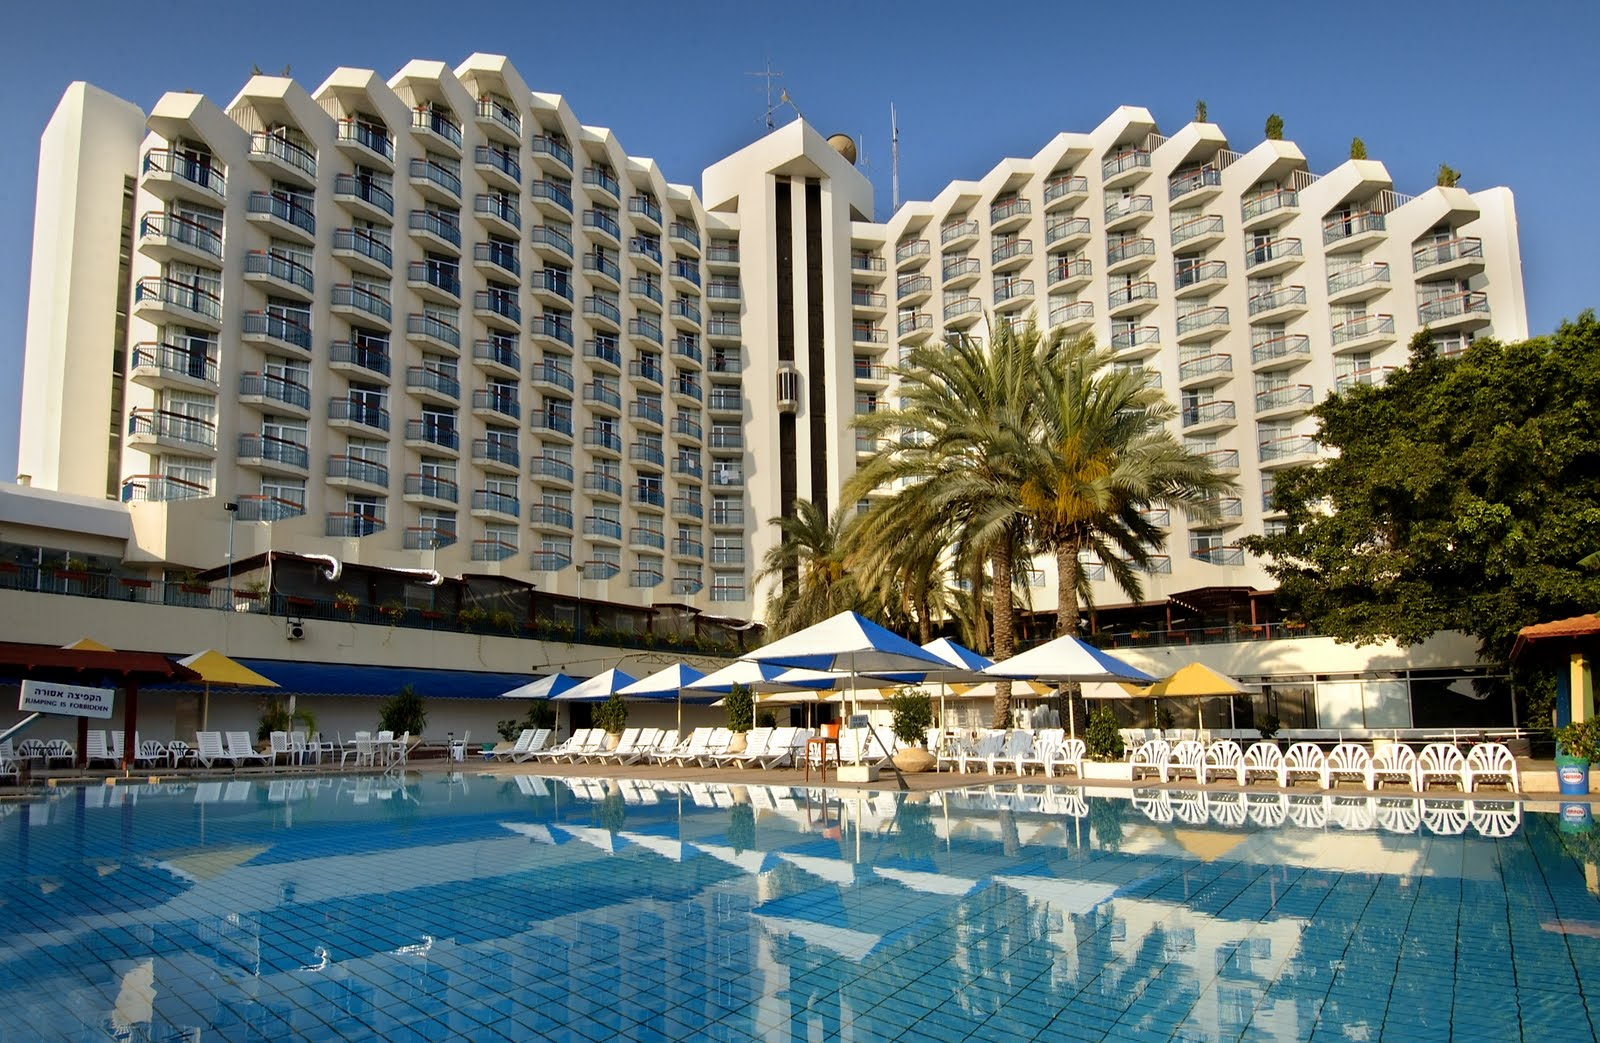 World hotels information4all israel hotels for Hotels jerusalem